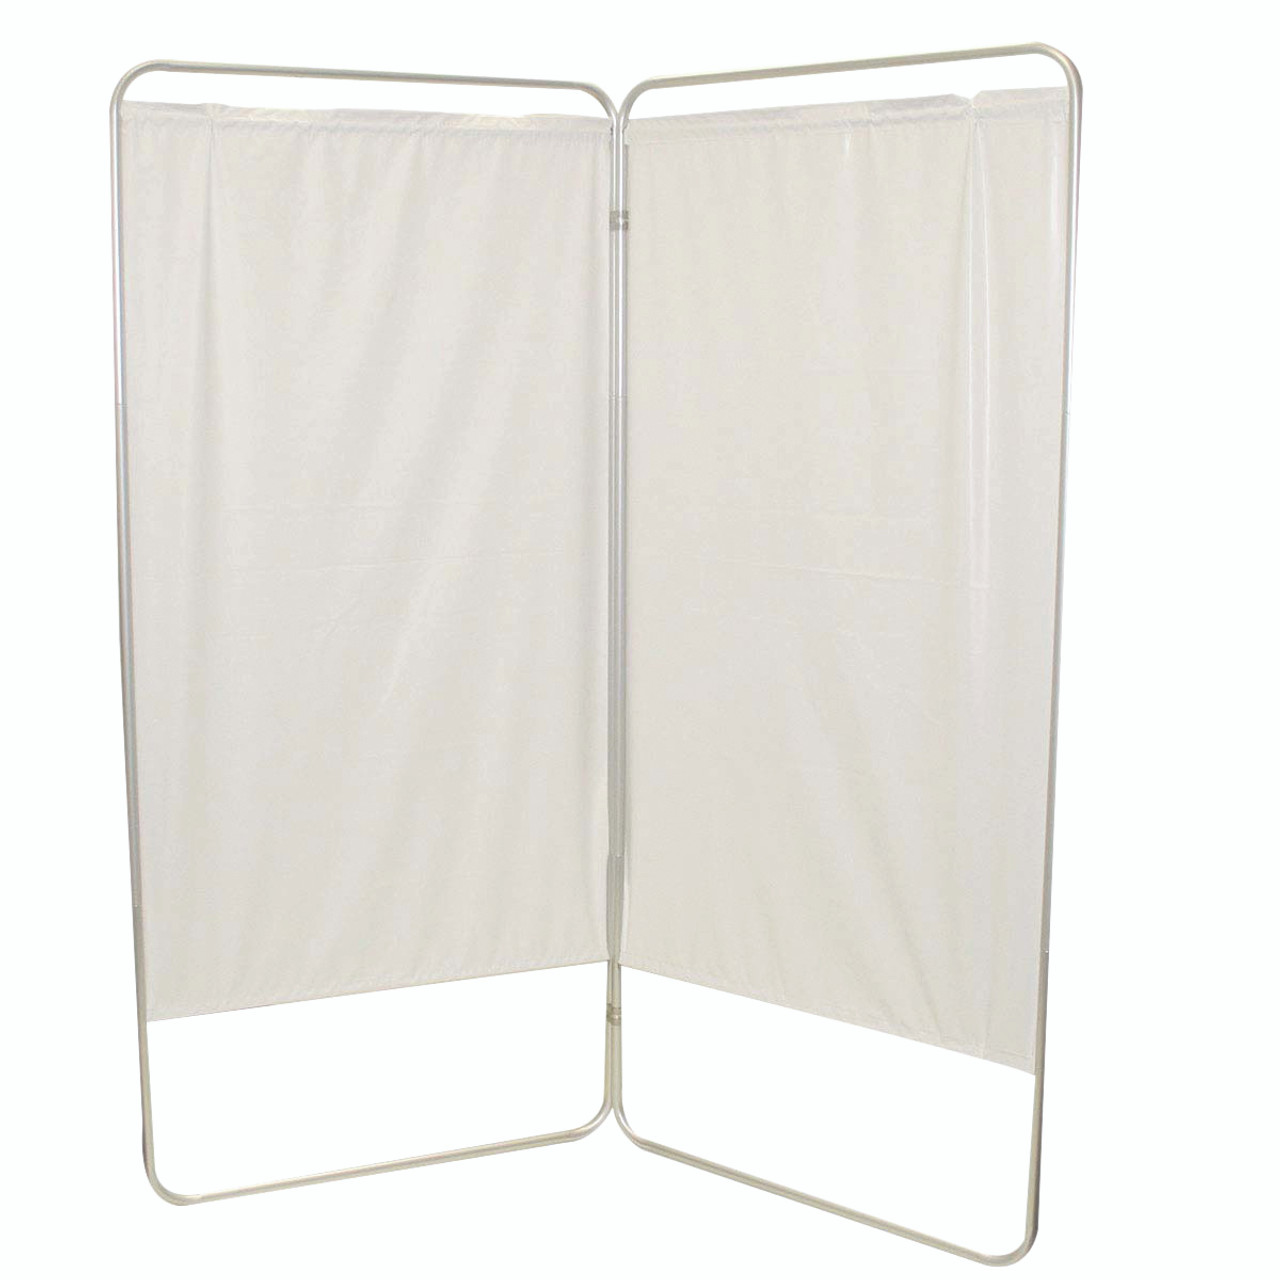 "King size 2-Panel Privacy Screen - Green 6 mil vinyl, 59"" W x 68"" H extended, 31"" W x 68"" H x1.5"" D folded"